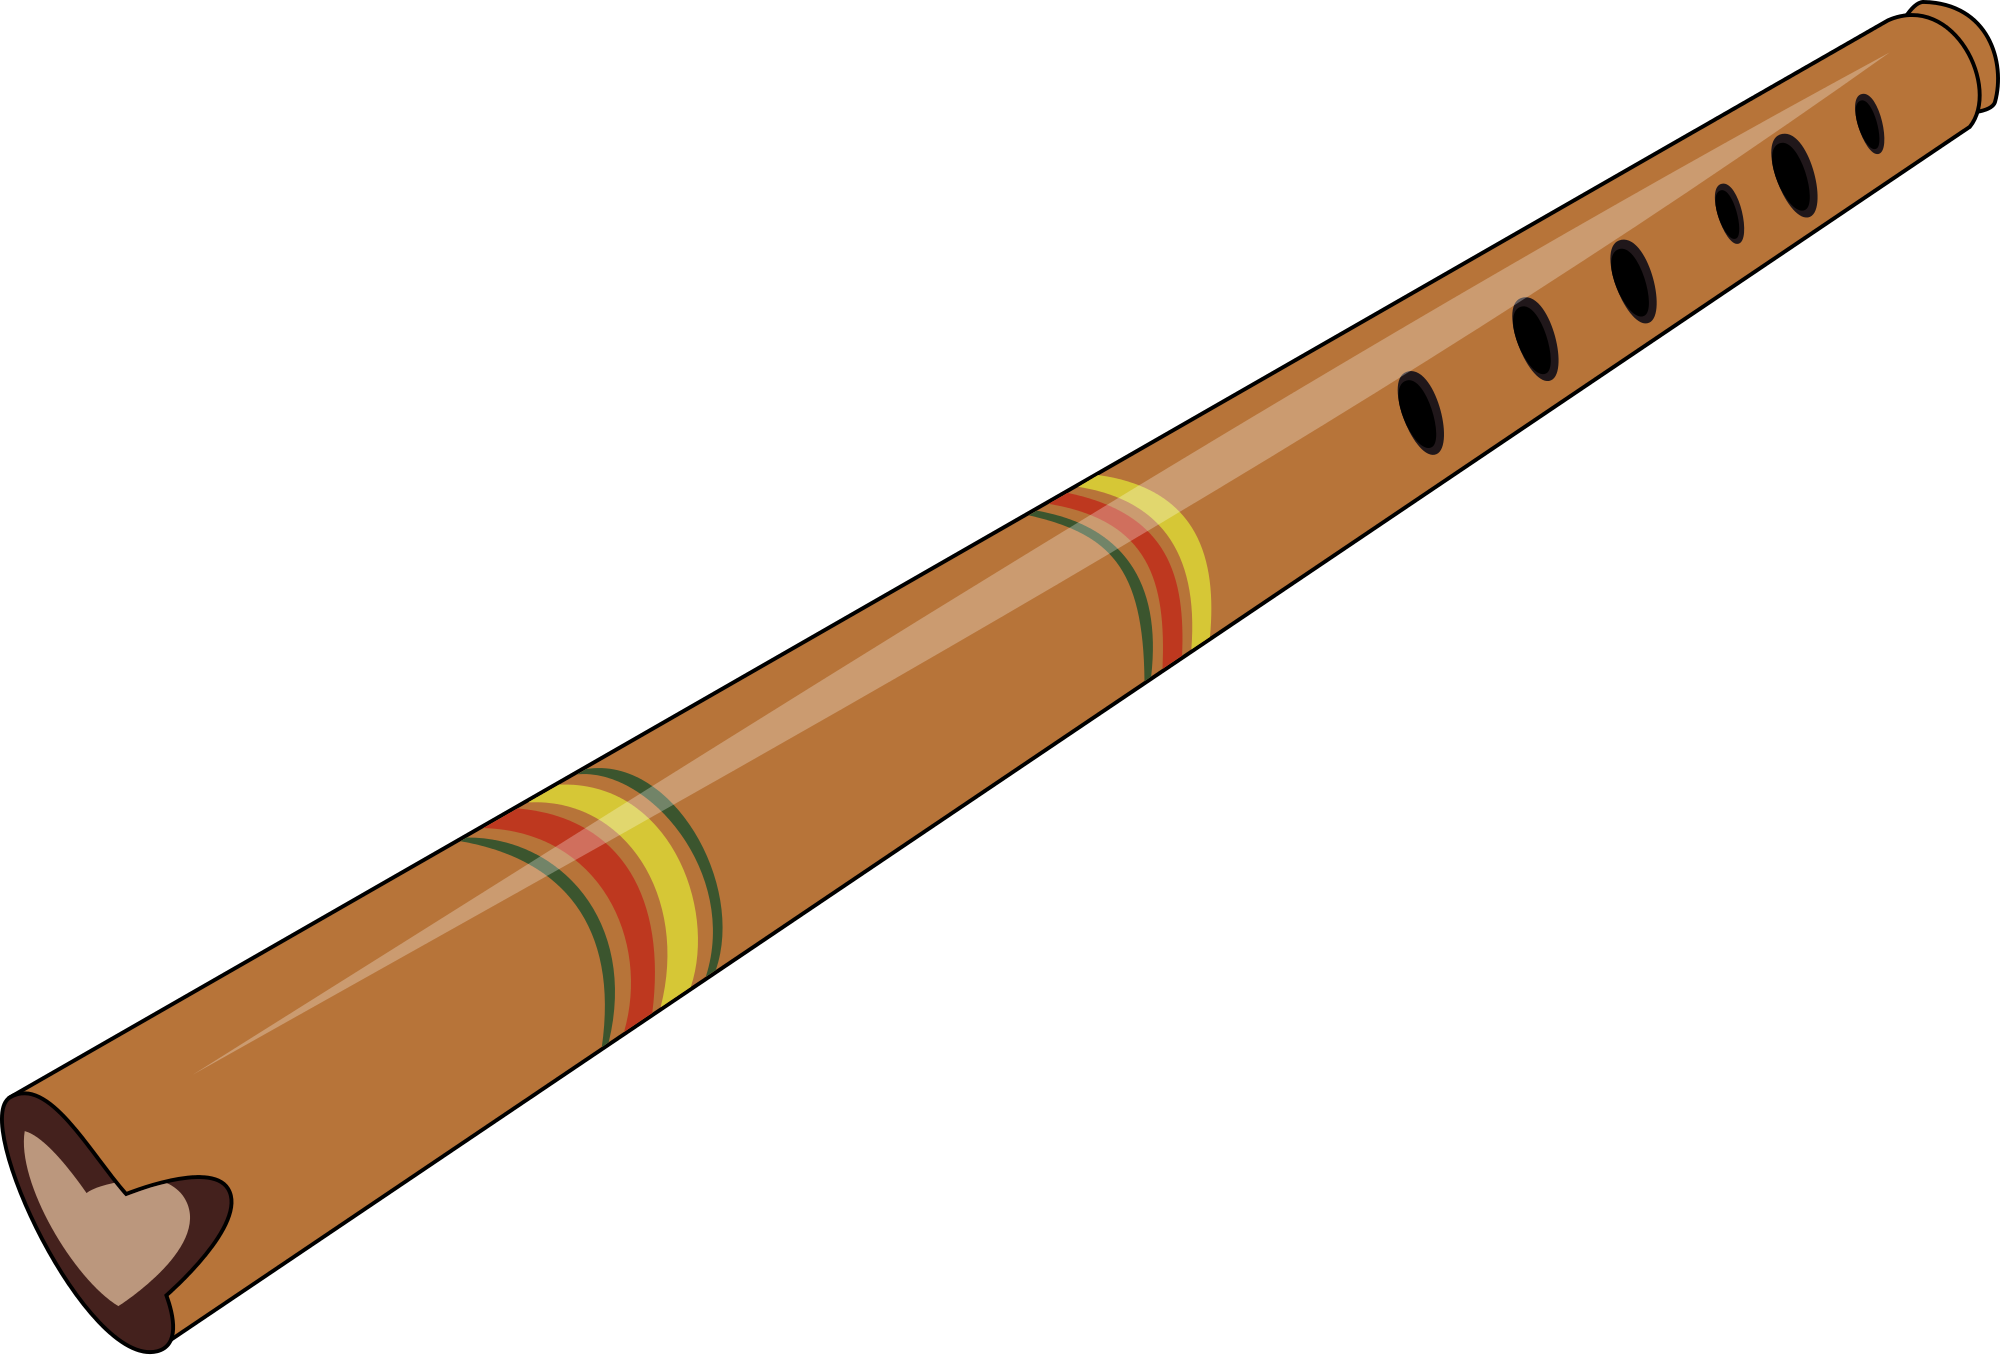 Quena svg wikimedia commons. Flutes clipart file